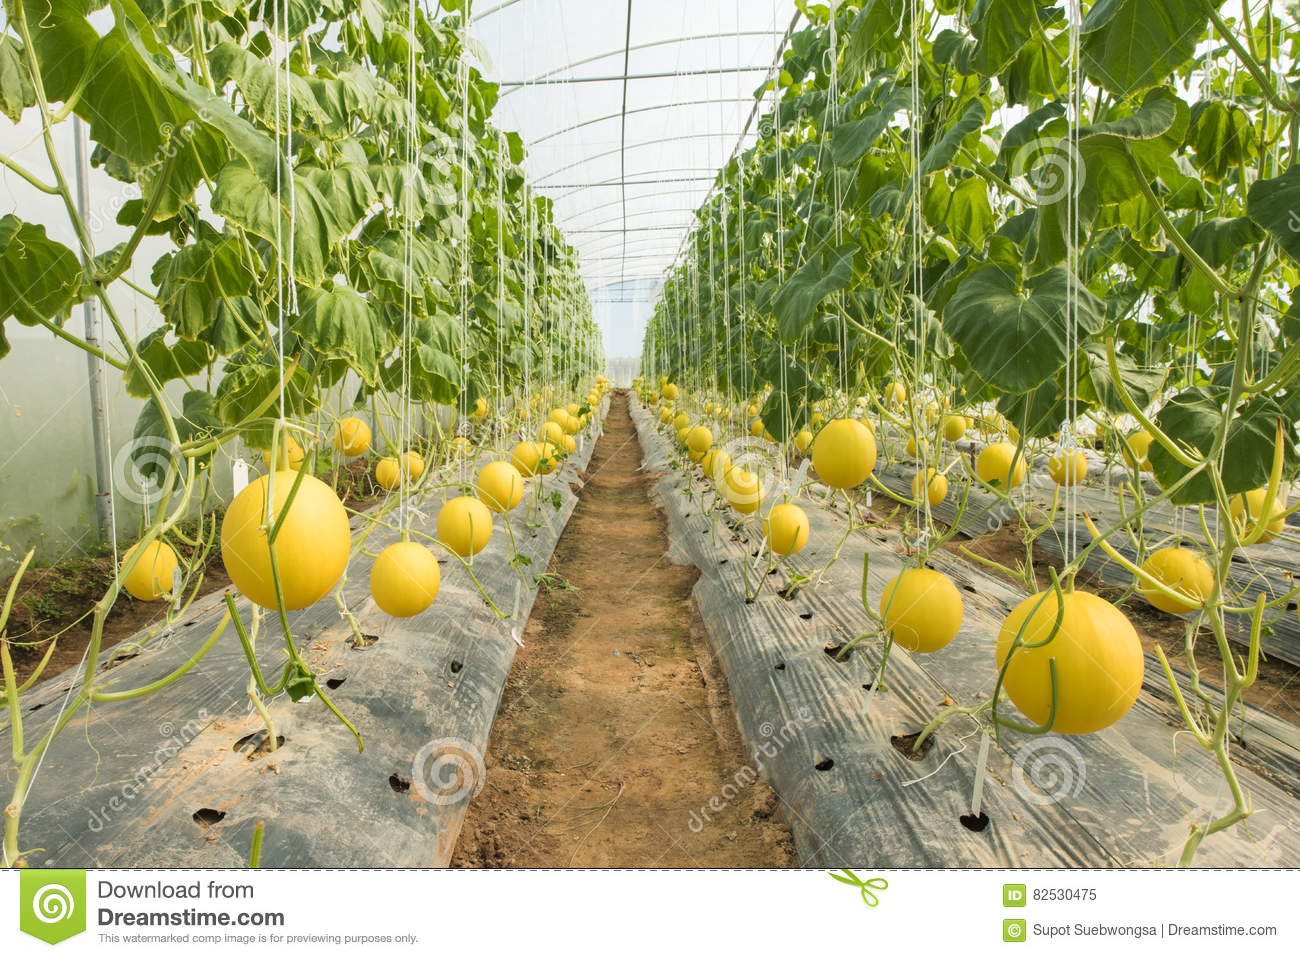 Melon farming melon plantation in the high tunnels greenhouse stock image image 82530475 - Culture du melon en serre ...